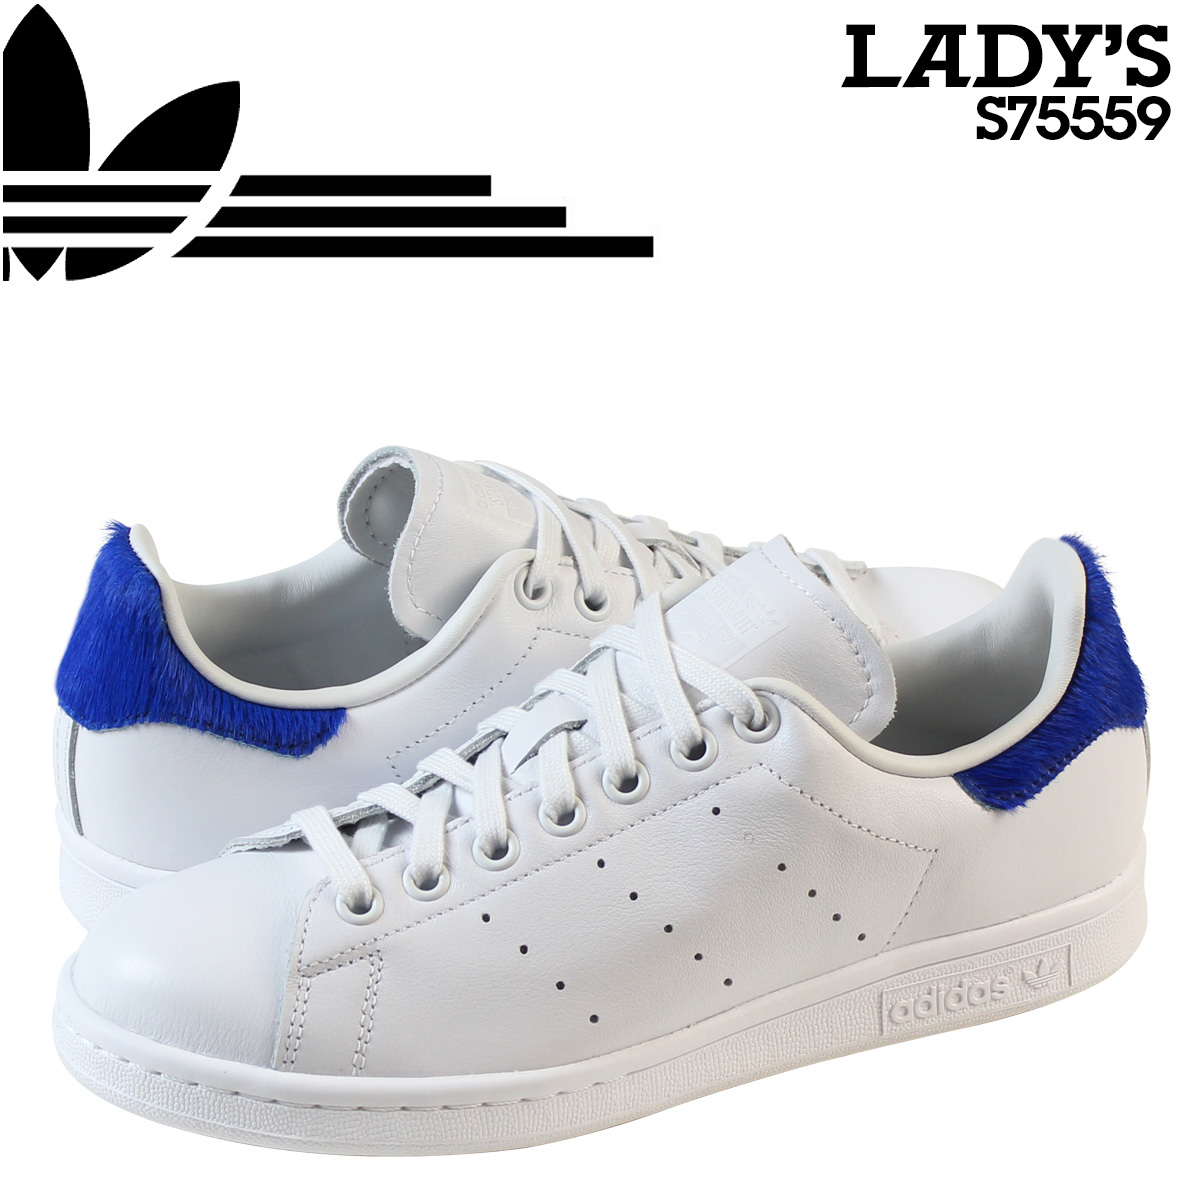 official photos 8dd89 d9583 adidas Originals adidas originals Stan Smith sneakers Womens STAN SMITH W  S75559 shoes white